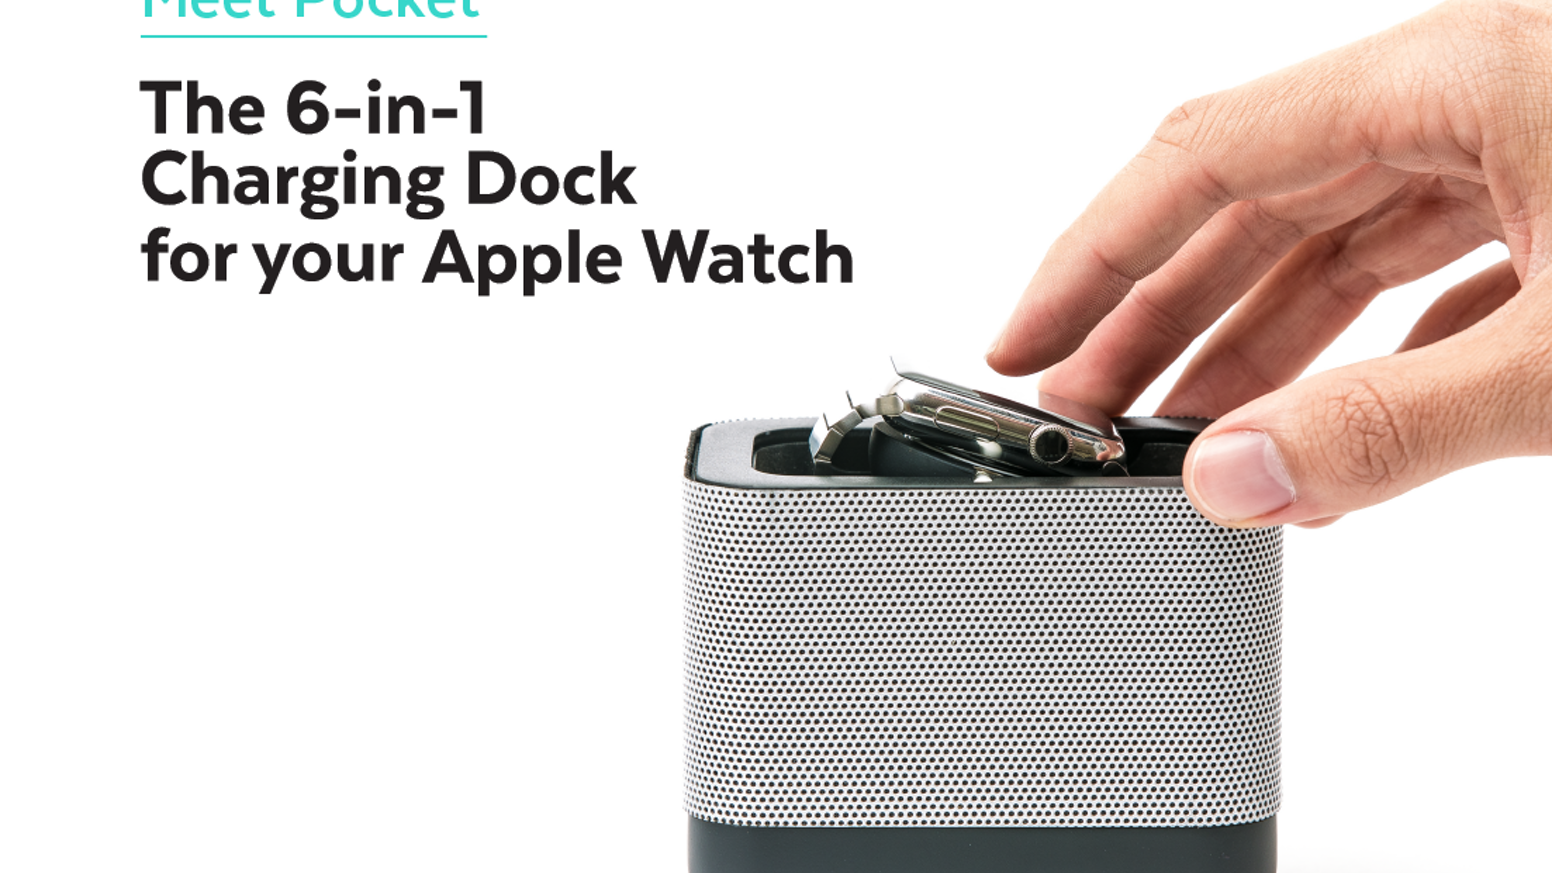 The world's only Apple Watch companion that is a dock, powerbank, cable organizer and protective case all rolled into one.